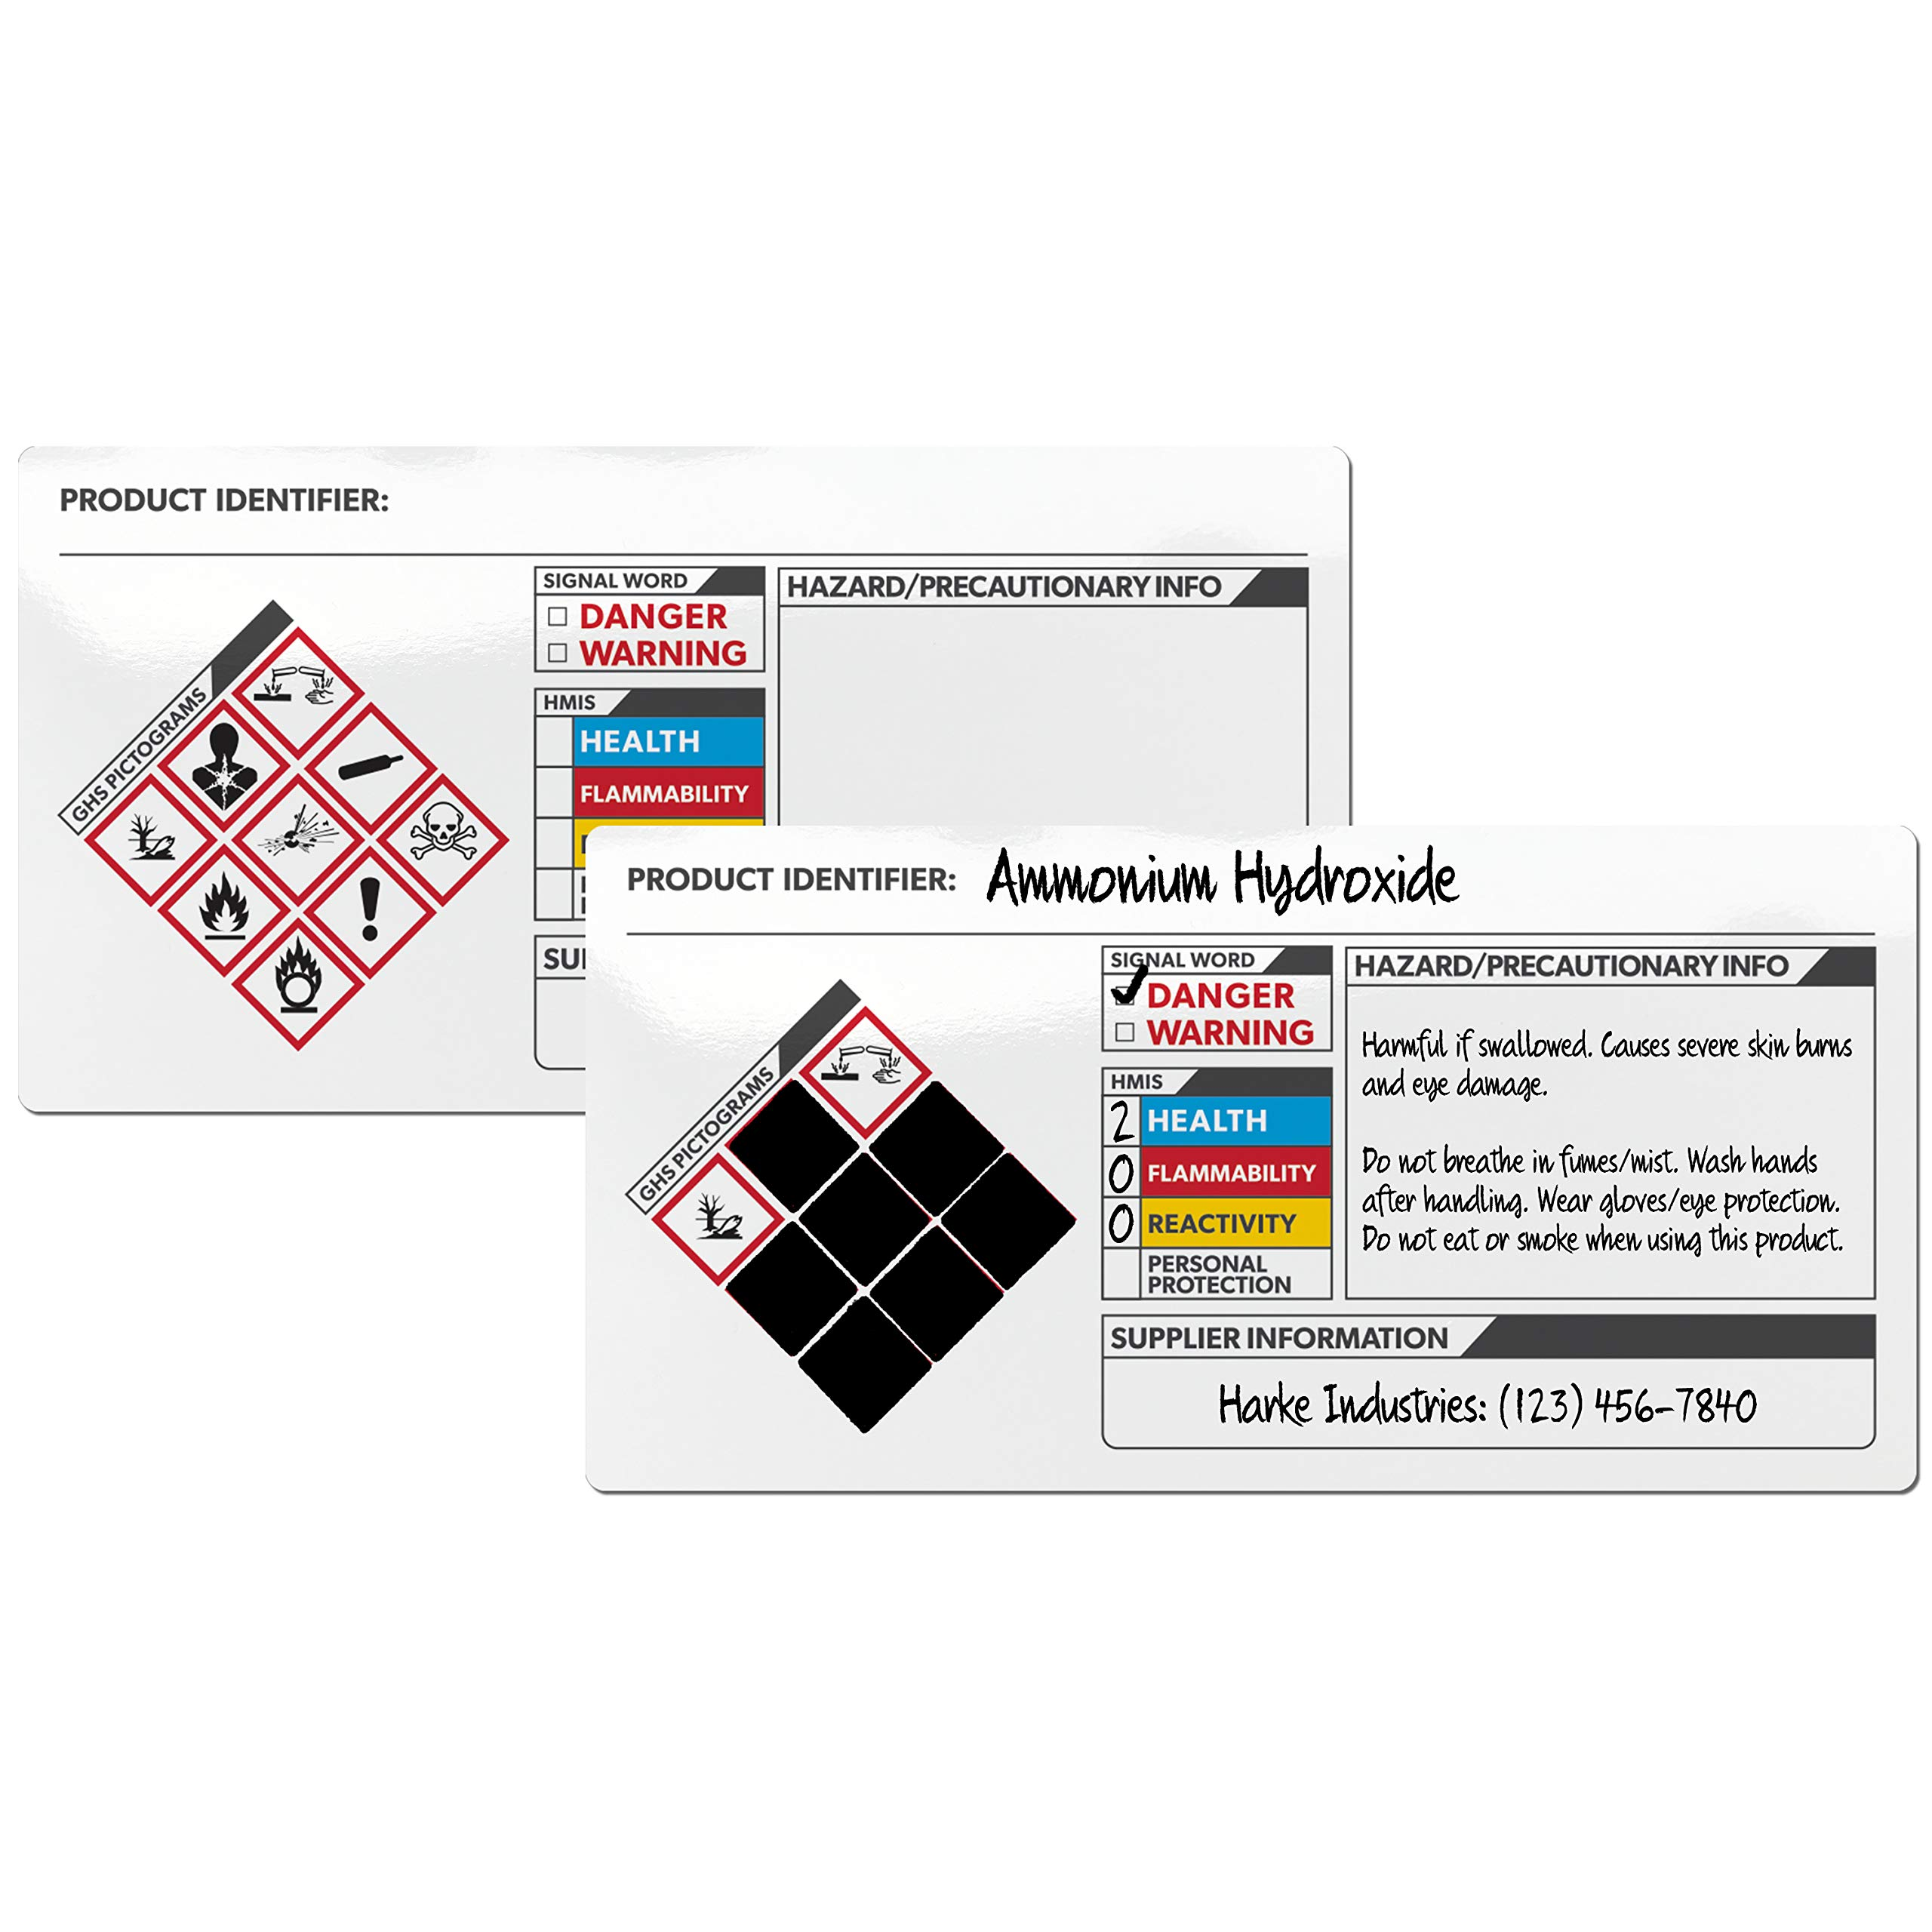 Secondary Container Labels 100 Labels per Roll GHS Globally Harmonized System 3.5 x 2.5 Inches Glossy Finish Adhesive